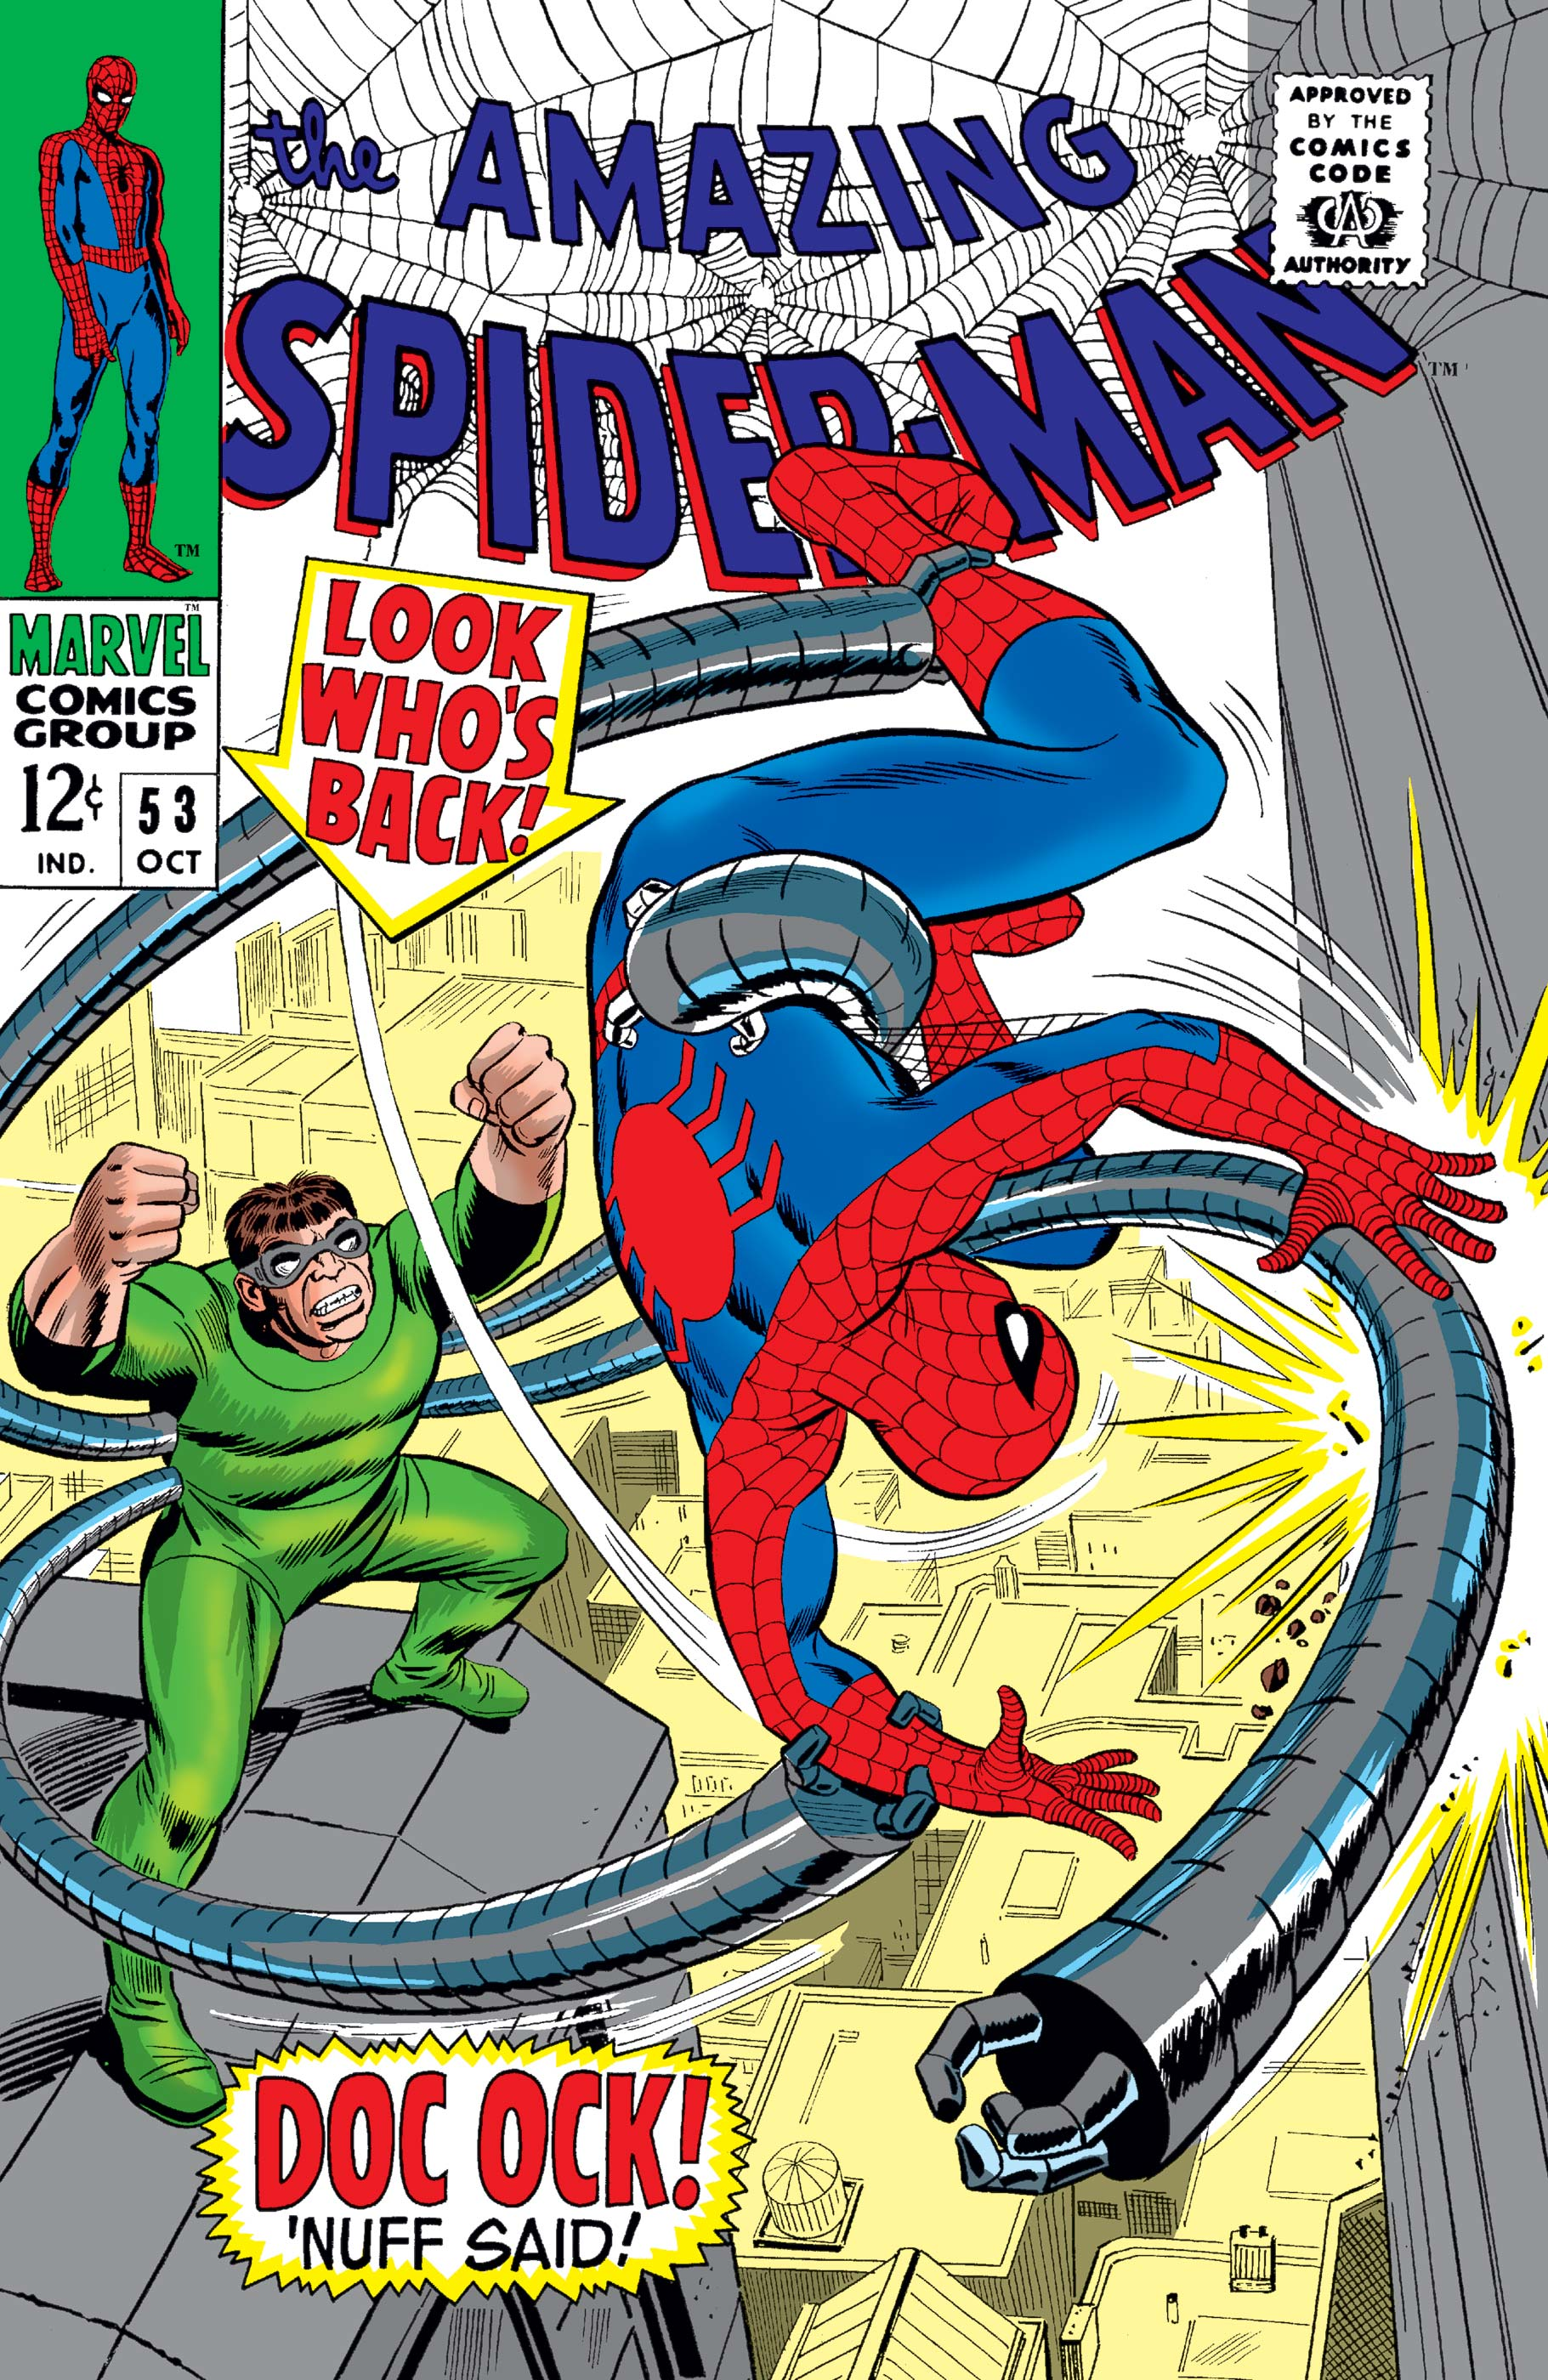 The Amazing Spider-Man (1963) #53